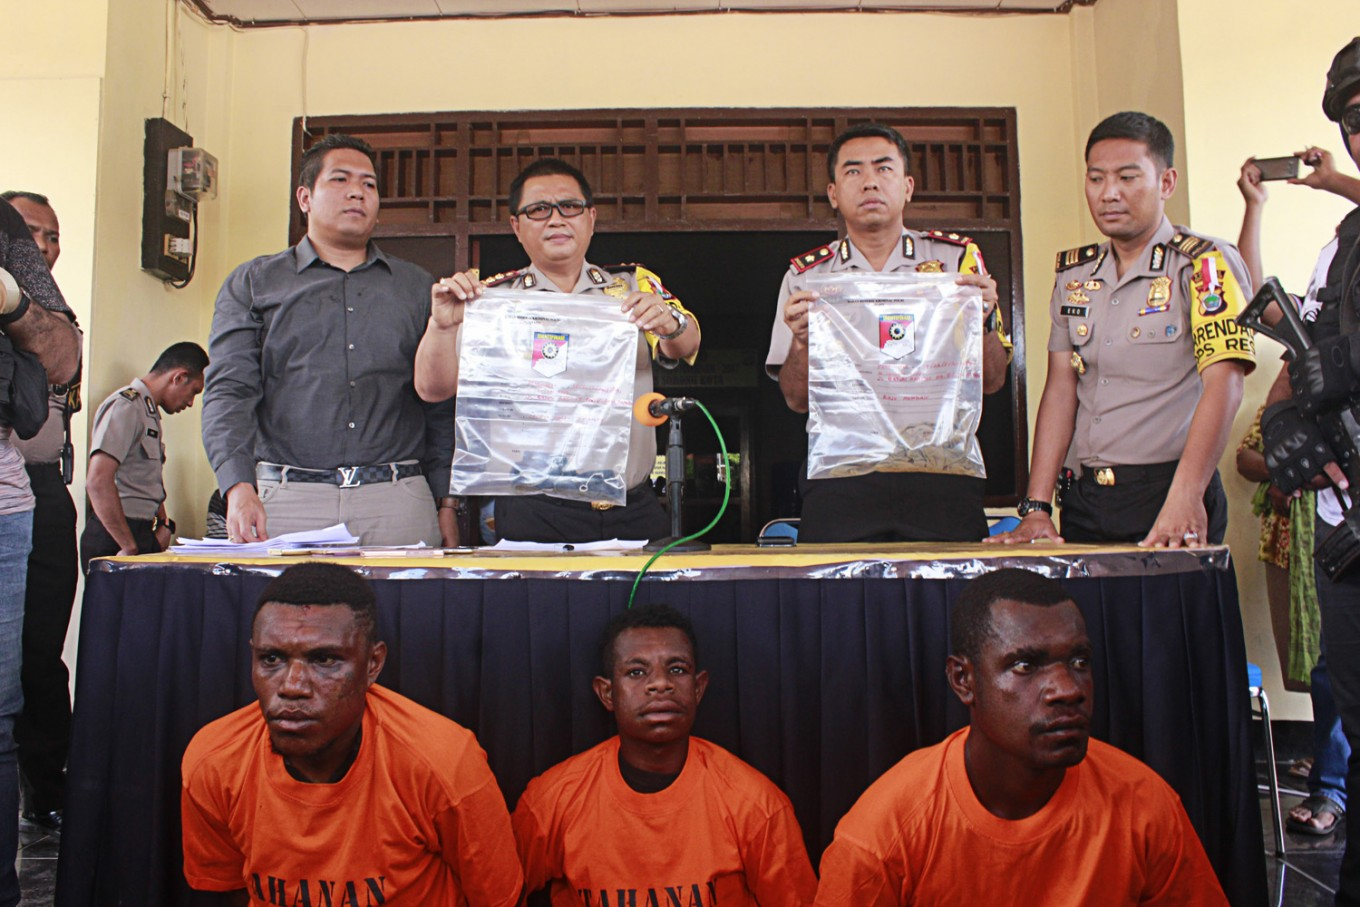 Alleged child rapists in Sorong may face death penalty: Police